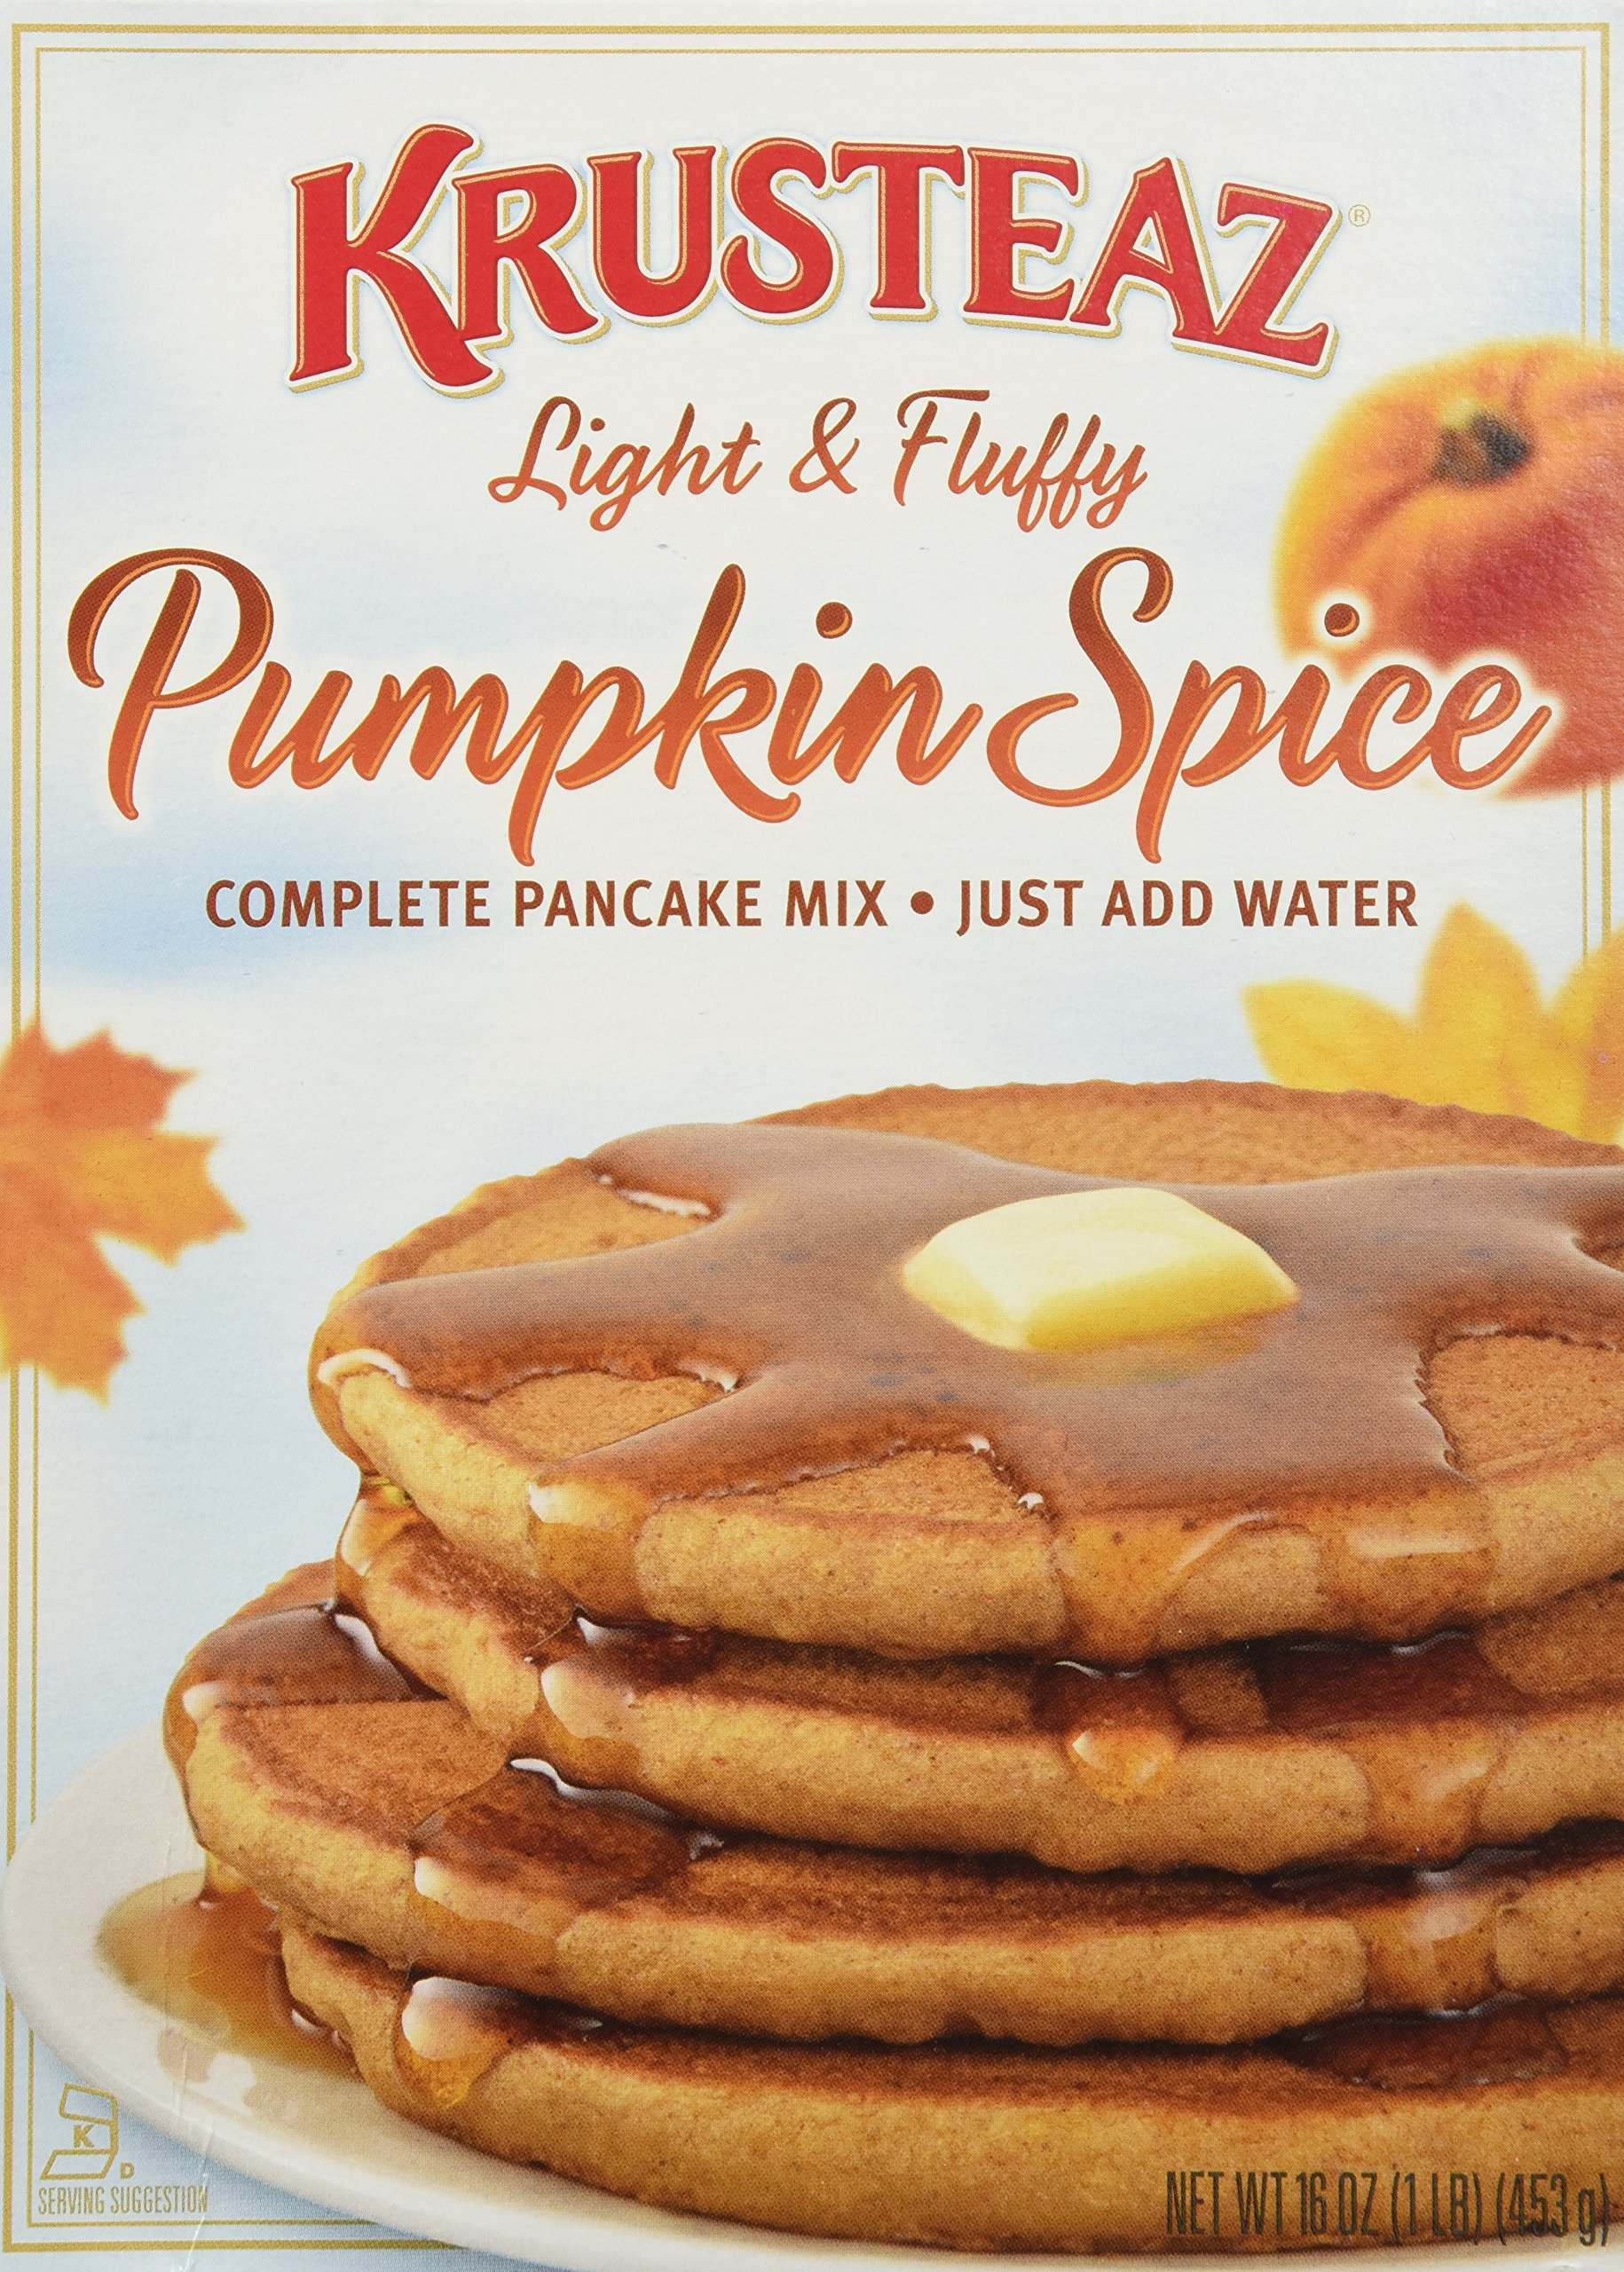 Krusteaz Pumpkin Spice Pancake Mix 16 oz(3 Pack) by Krusteaz